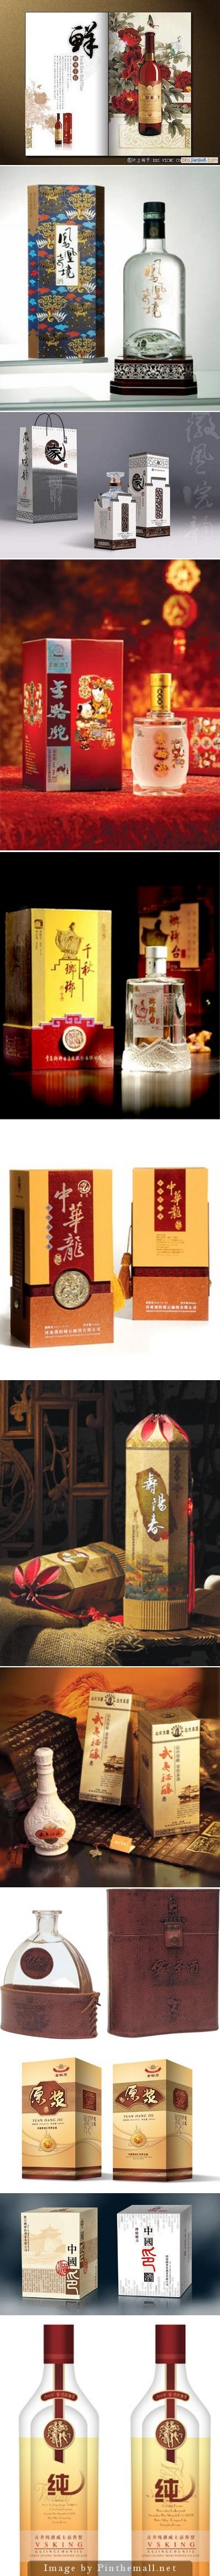 Gorgeous examples of #Chinese #wine #packaging PD - created via http://www.packagingoftheworld.com/2008/11/12-chinese-wine-packaging-design.html